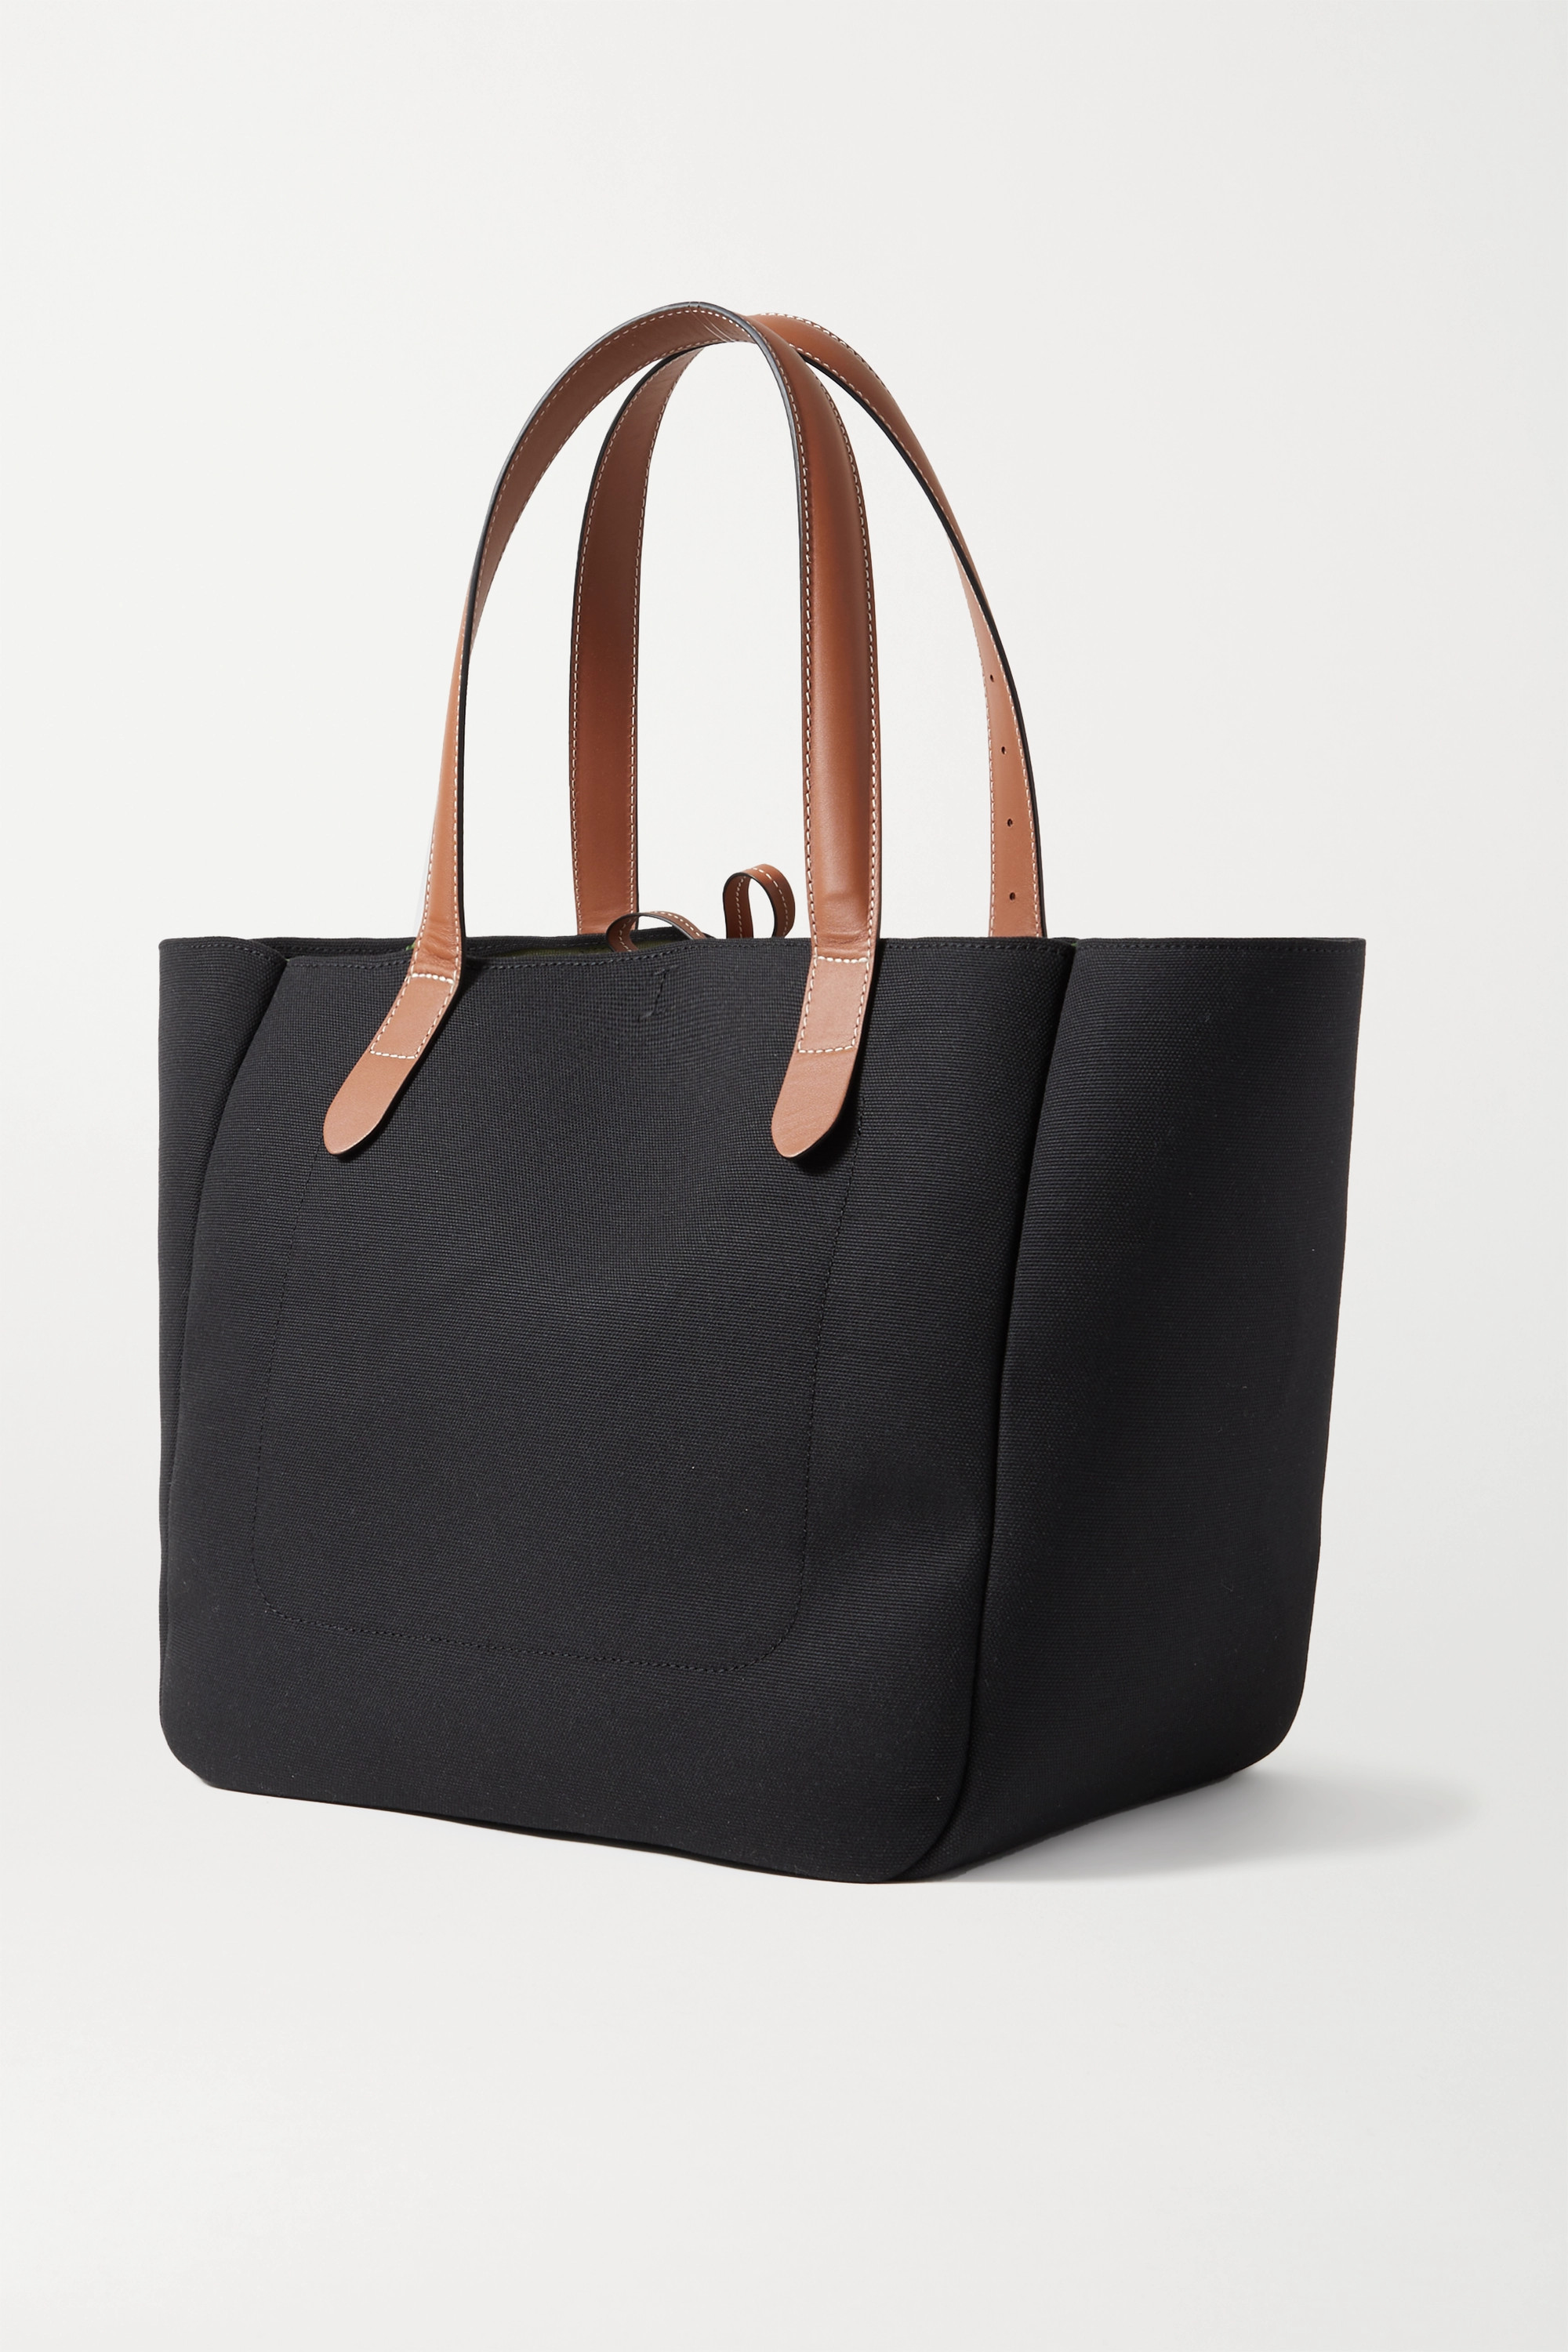 JW Anderson Leather-trimmed embroidered canvas tote